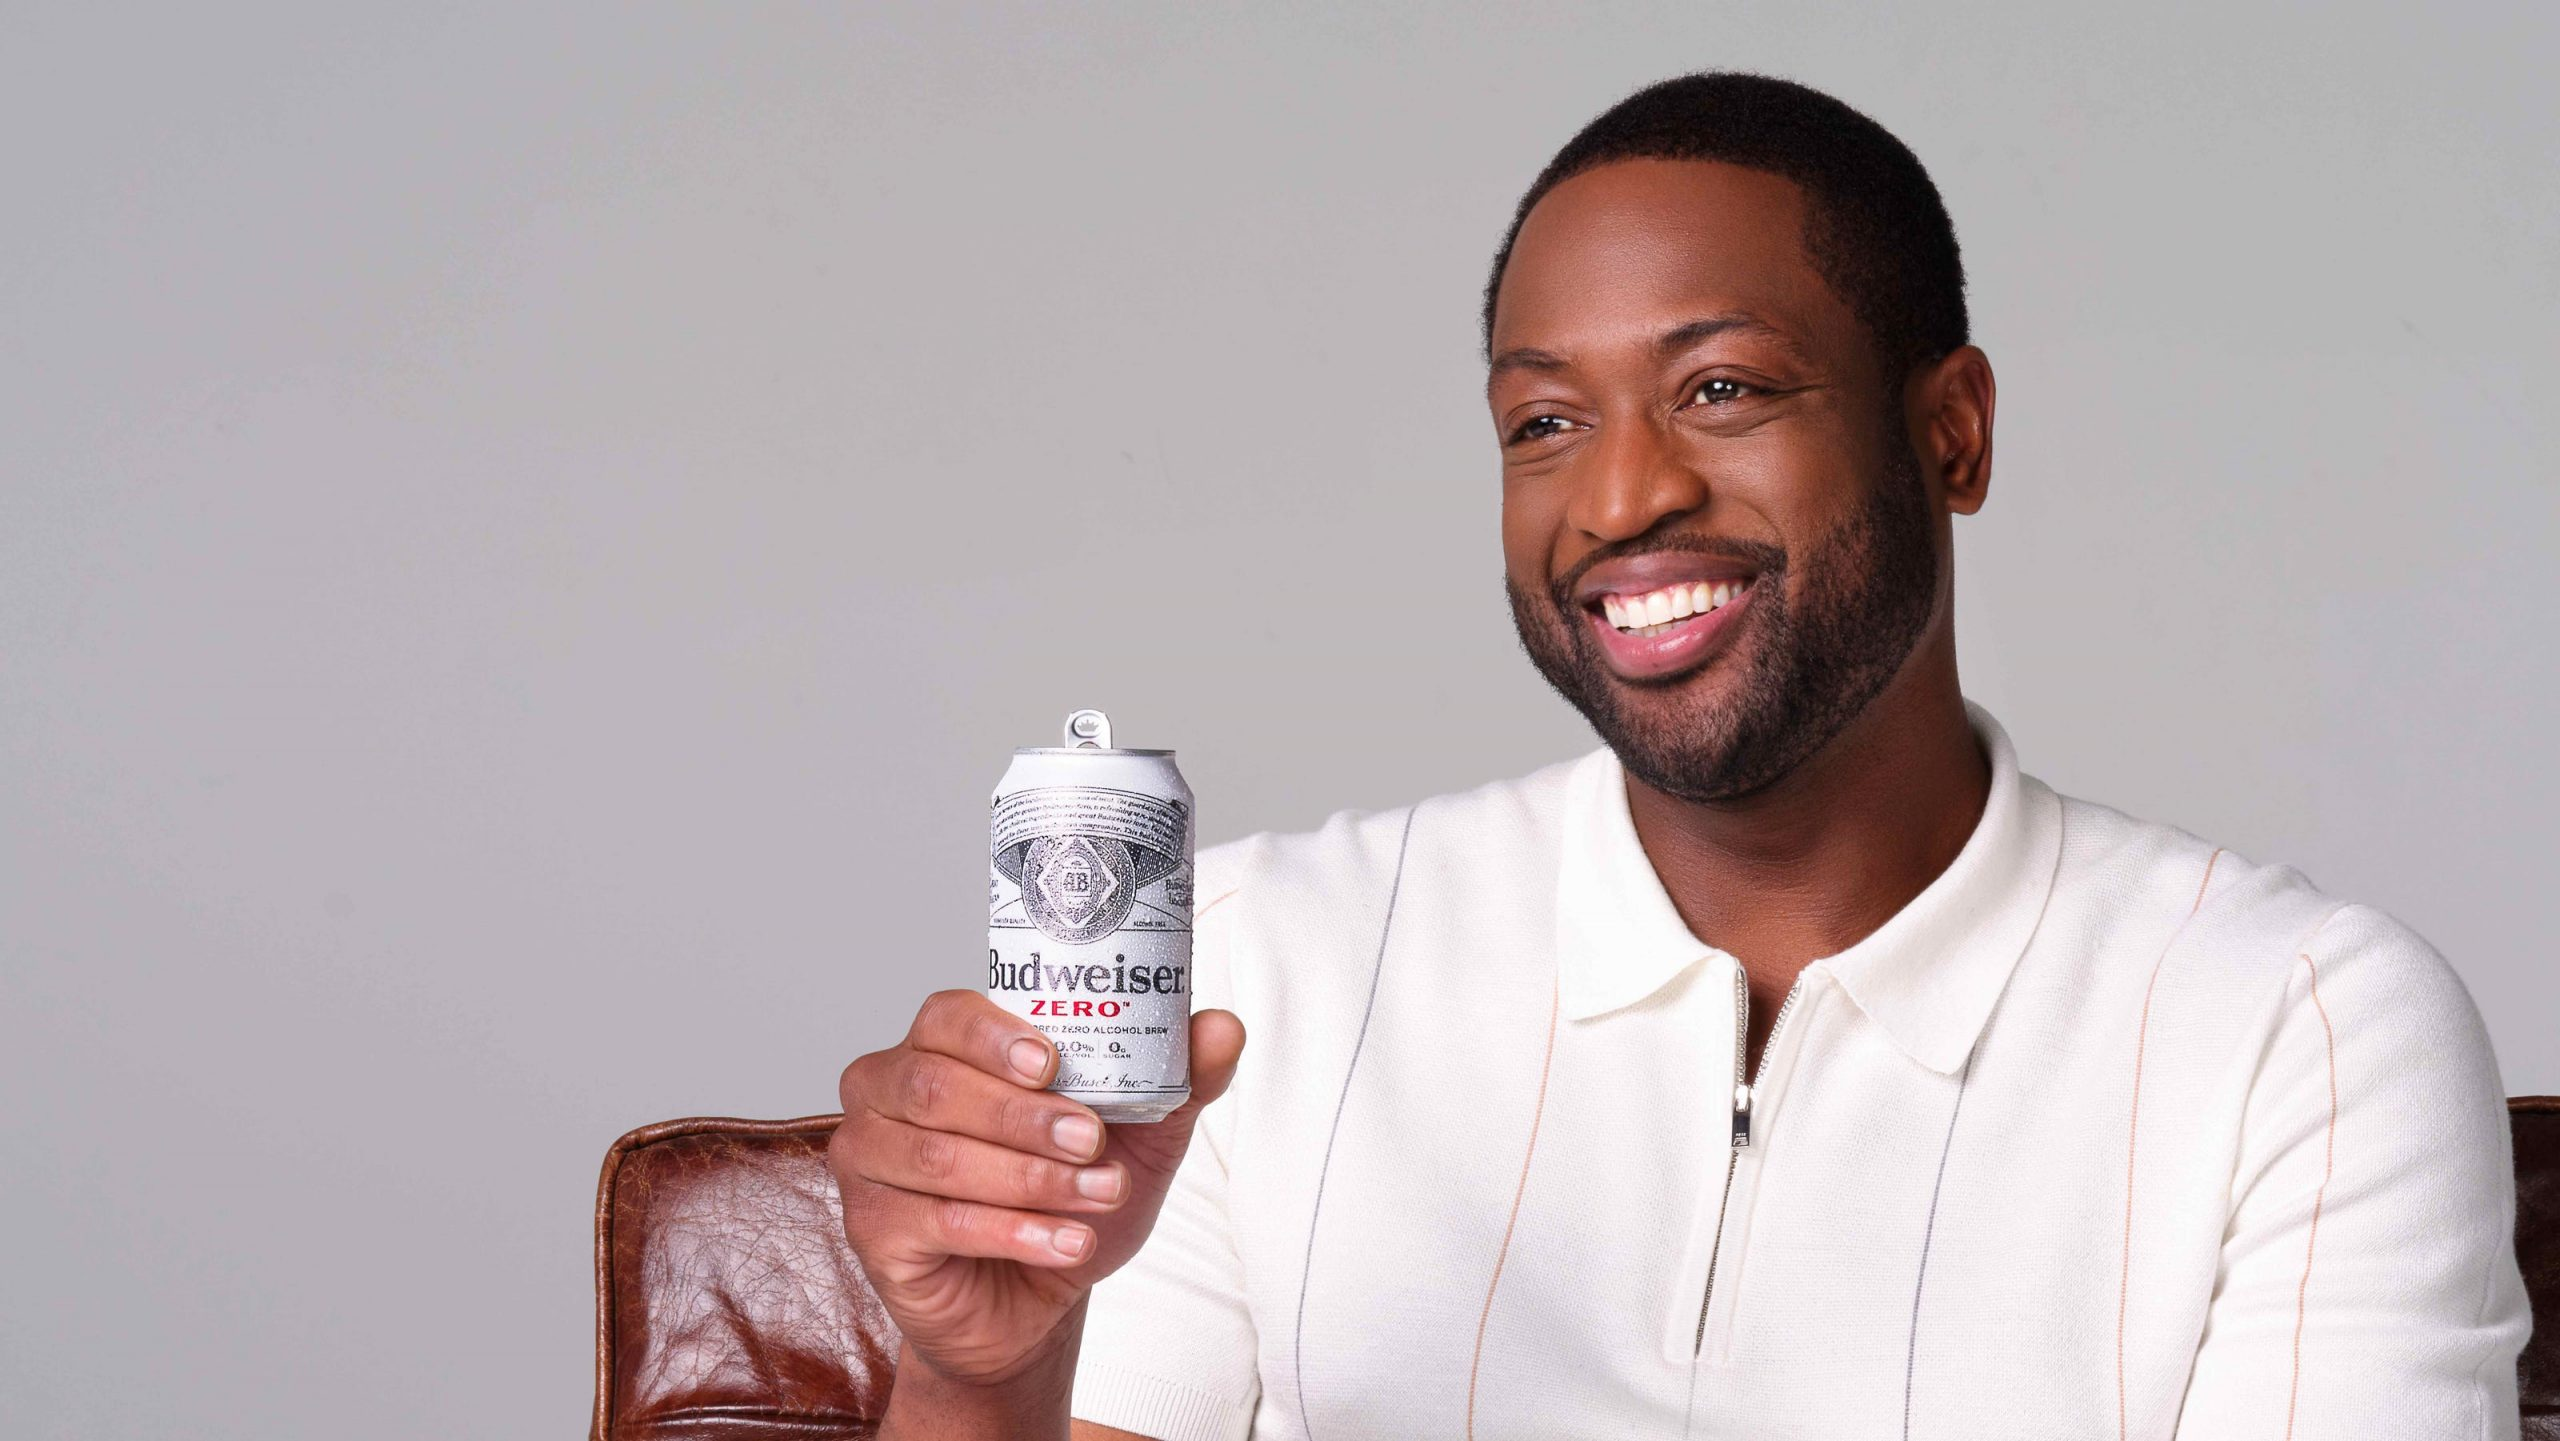 Anheuser-busch Looking For A Slam Dunk In Nonalcoholic Beer Category With Budweiser Zero photo